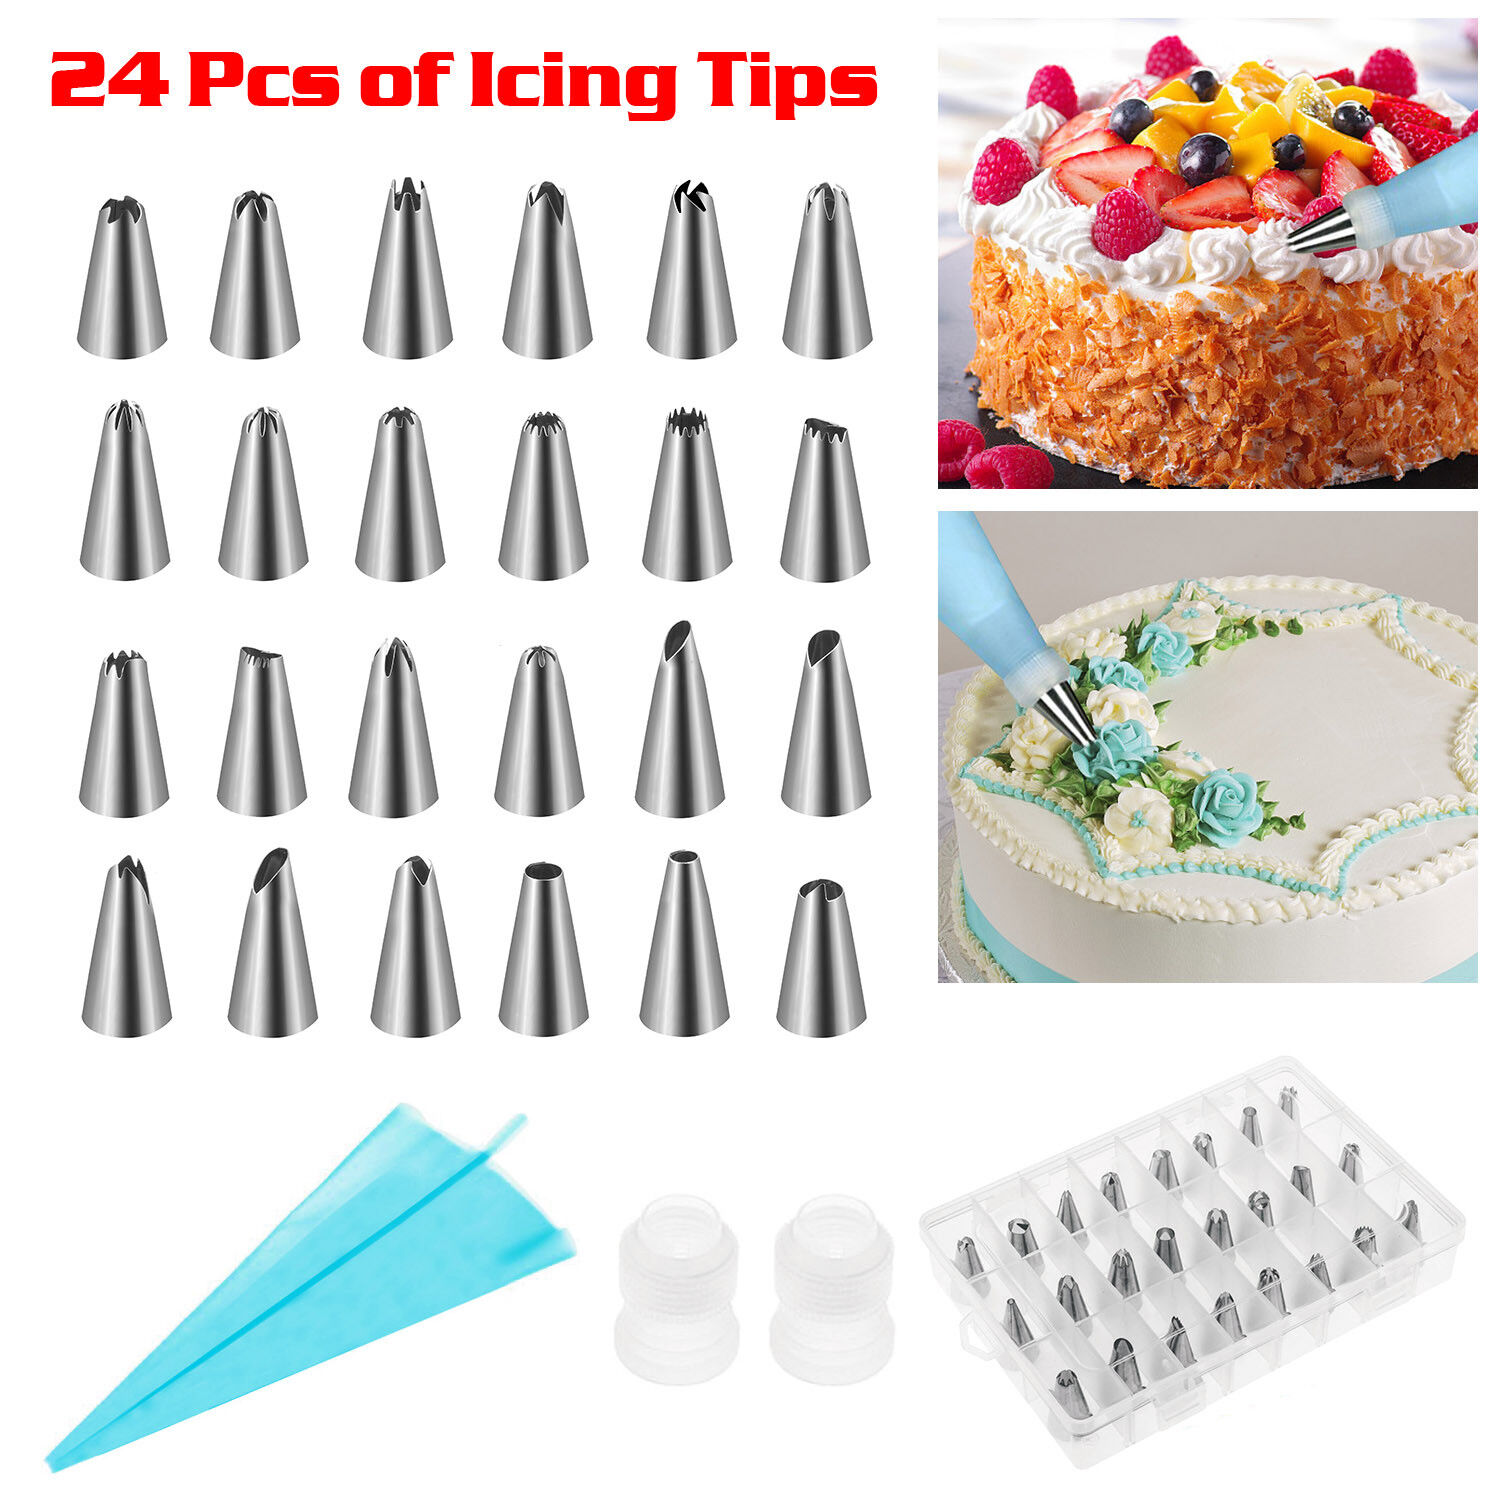 Details about Decoration Cake Kit Set Tools Bags Russian Piping Tips Pastry  Icing Bags